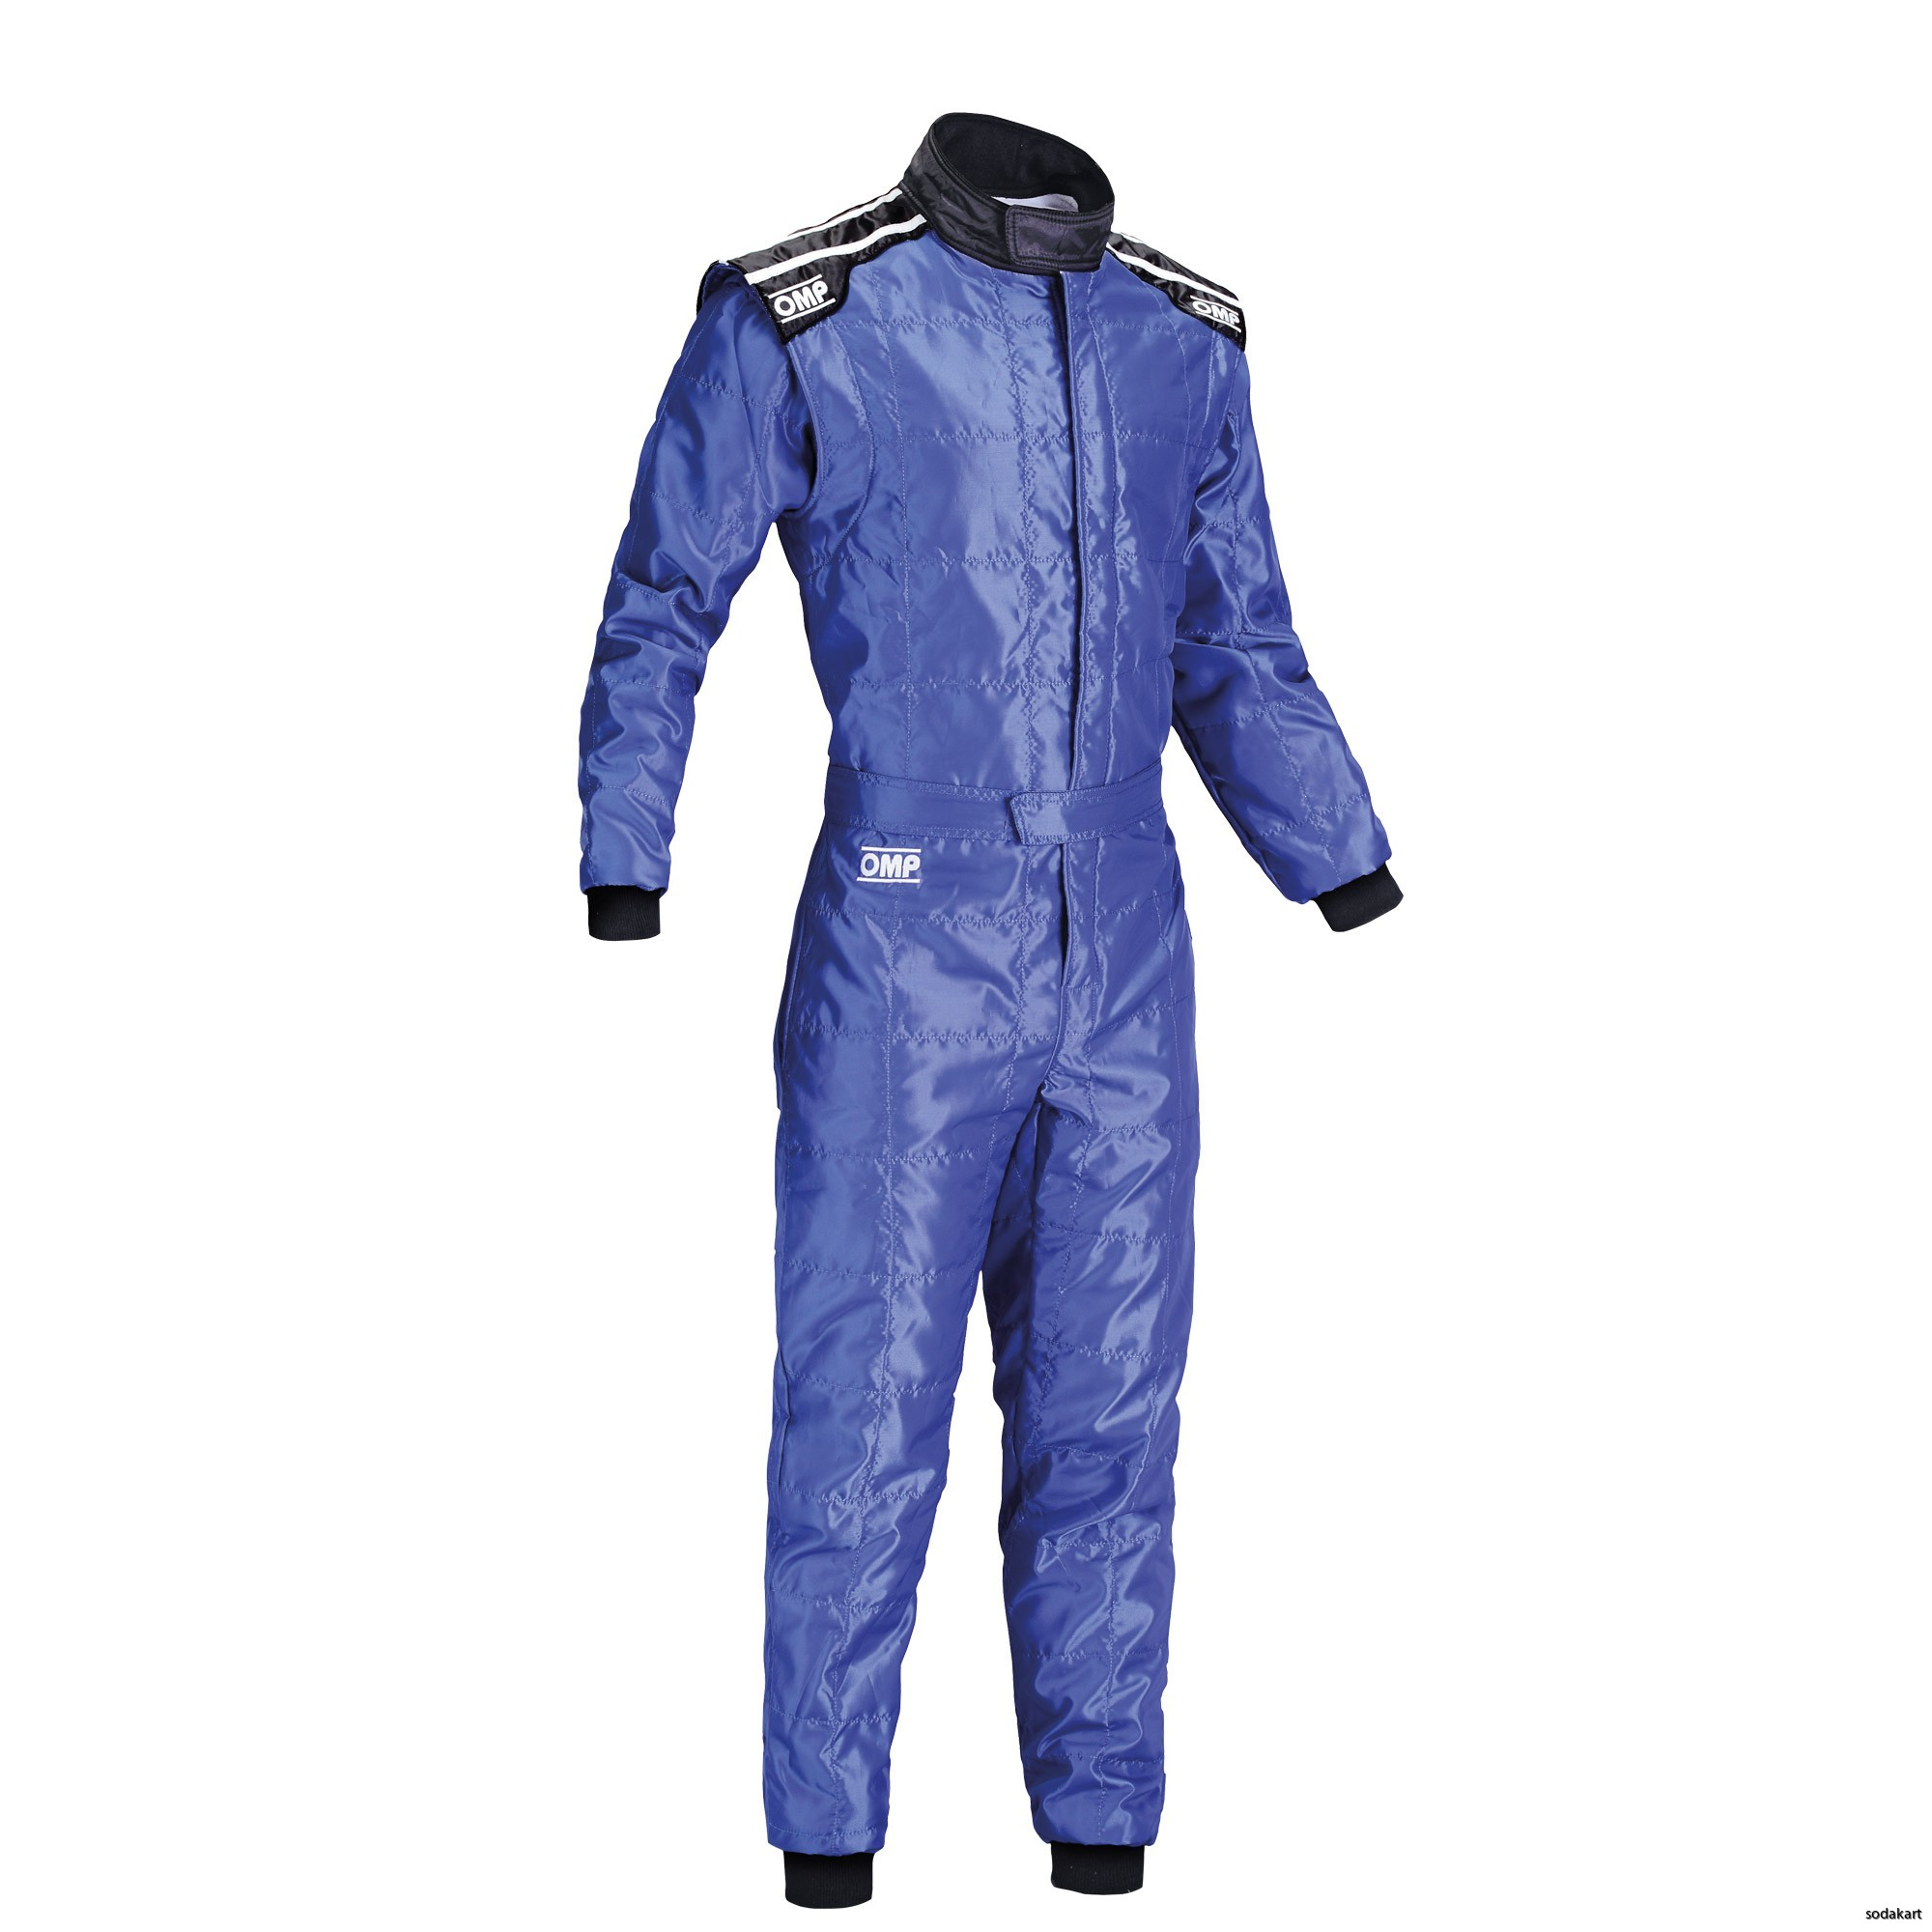 L_ks4suit_blue_31_KK01724